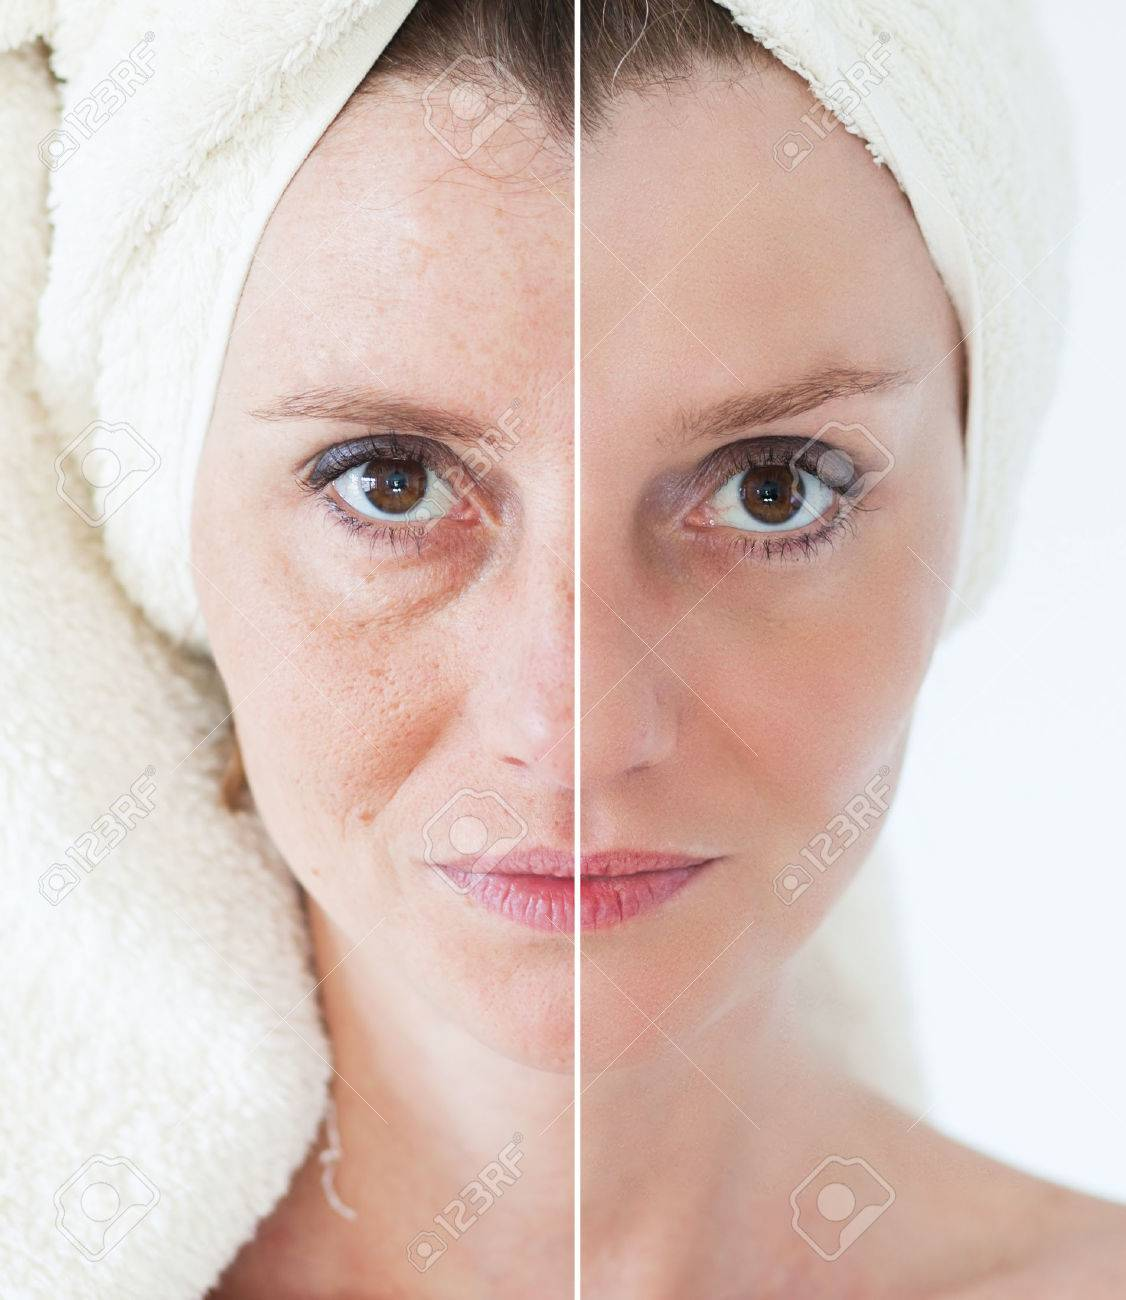 Beauty concept - skin care, anti-aging procedures, rejuvenation, lifting, tightening of facial skin - 38470622